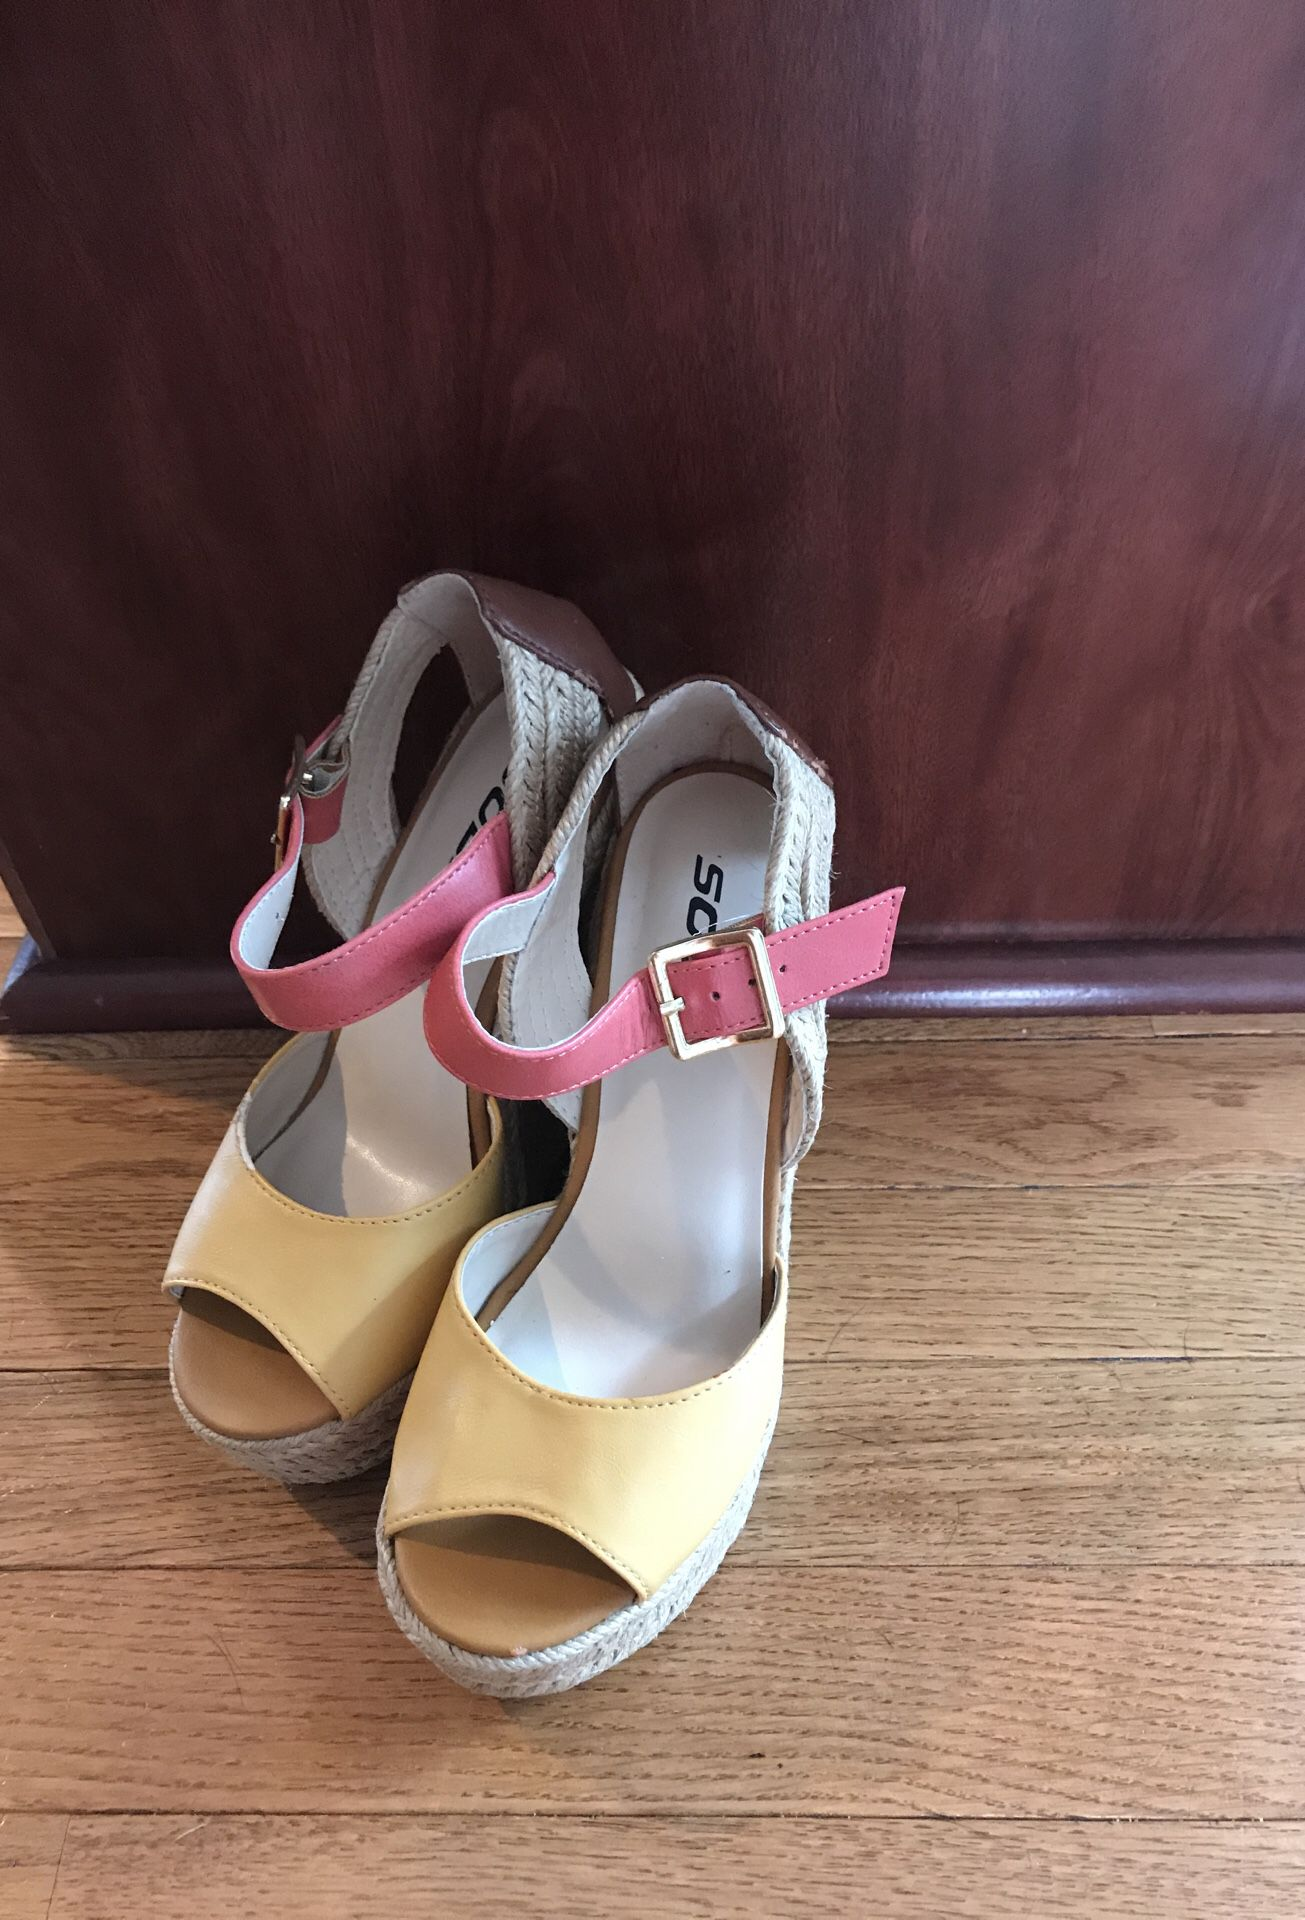 Rand new wedges size 6